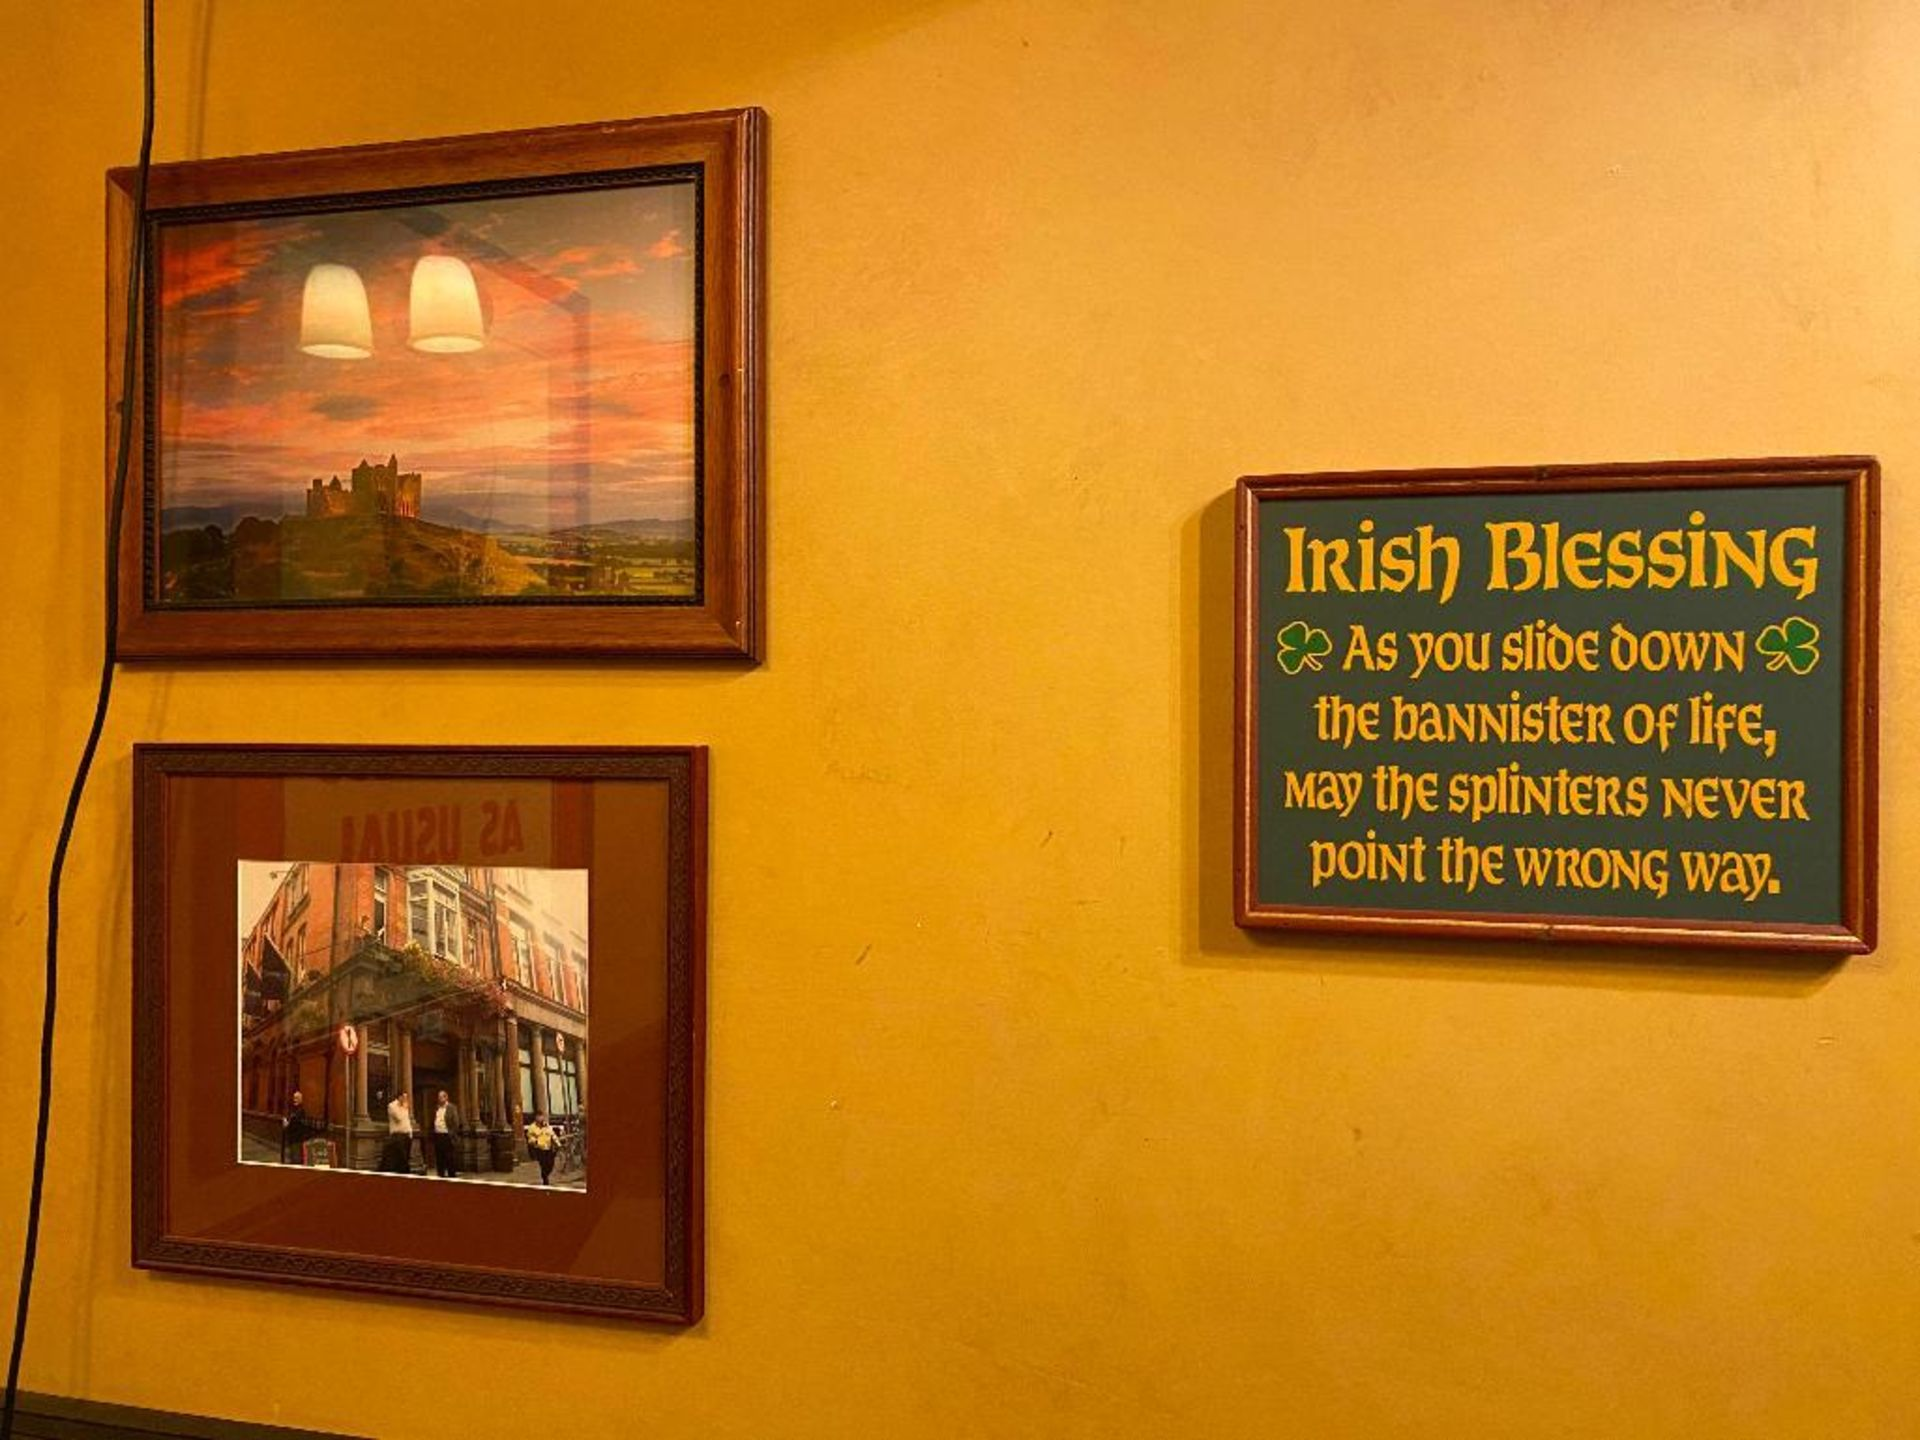 LOT OF (5) FRAMED MEMORABILIA PHOTOS & (1) IRISH BLESSING PLAQUE - NOTE: REQUIRES REMOVAL FROM WALL, - Image 2 of 4